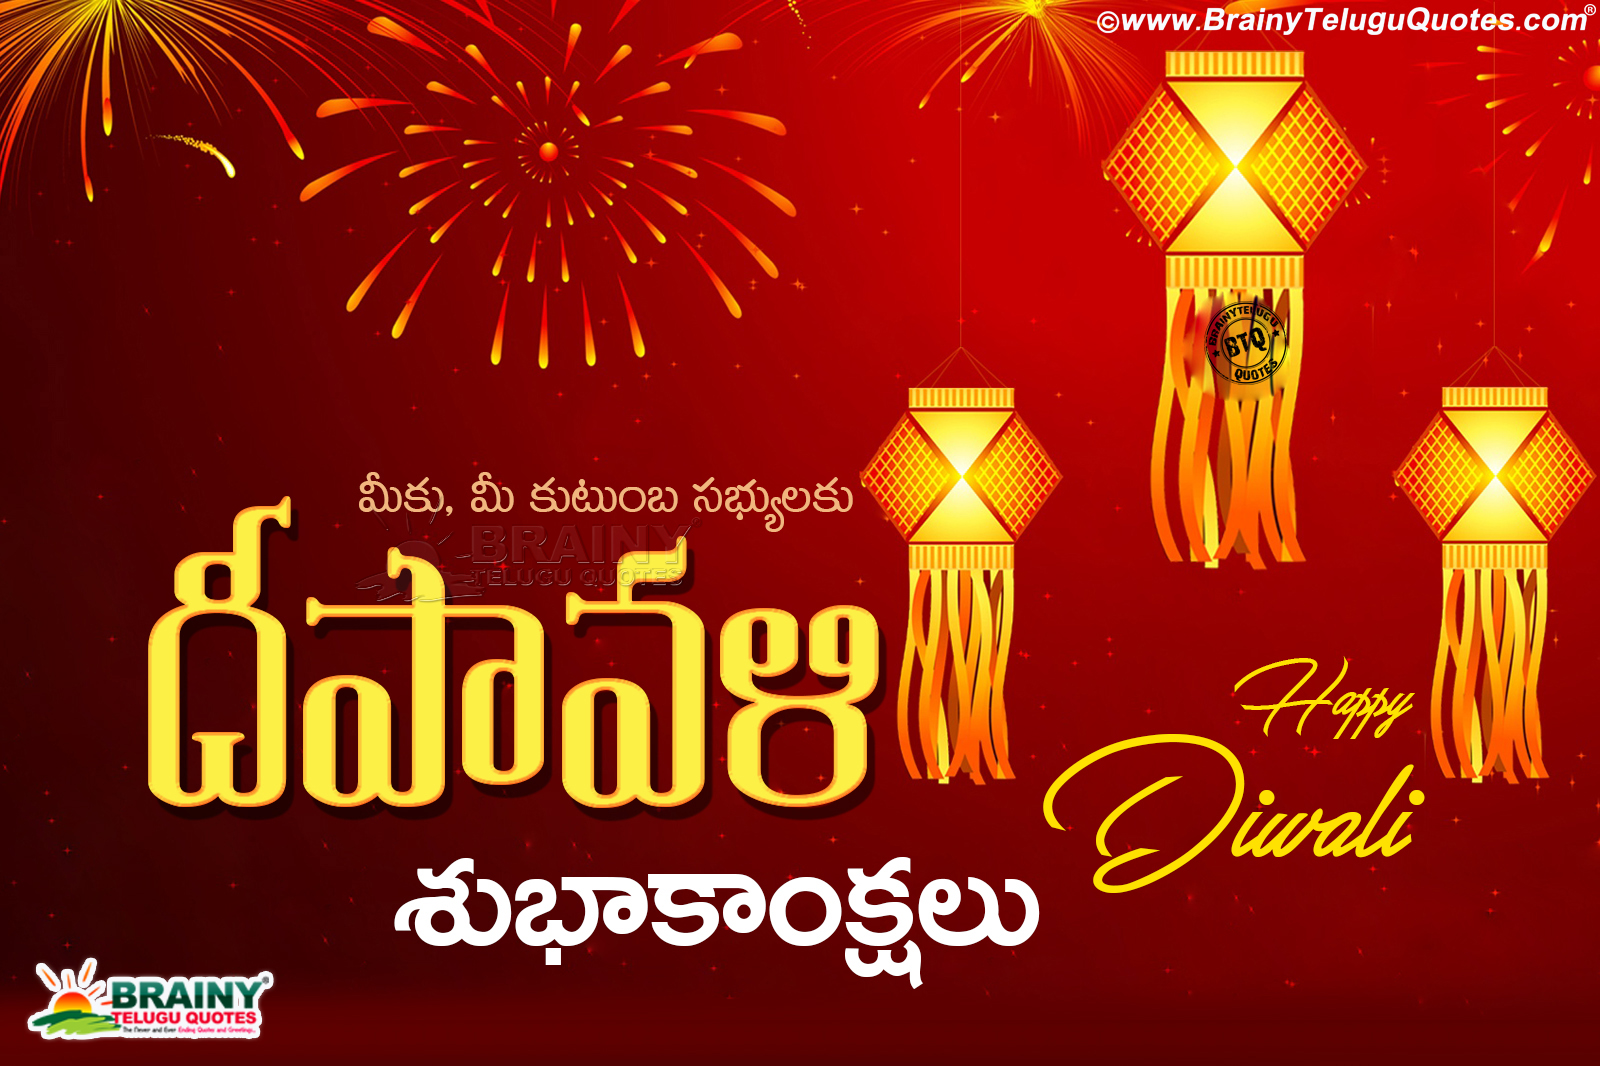 Deepavali greetings quotes in telugu samples of wedding invitation happy deepavali greetings hd wallpapers in telugu 2017 deepavali best 2btelugu2bdeepavali2bgreetings m4hsunfo